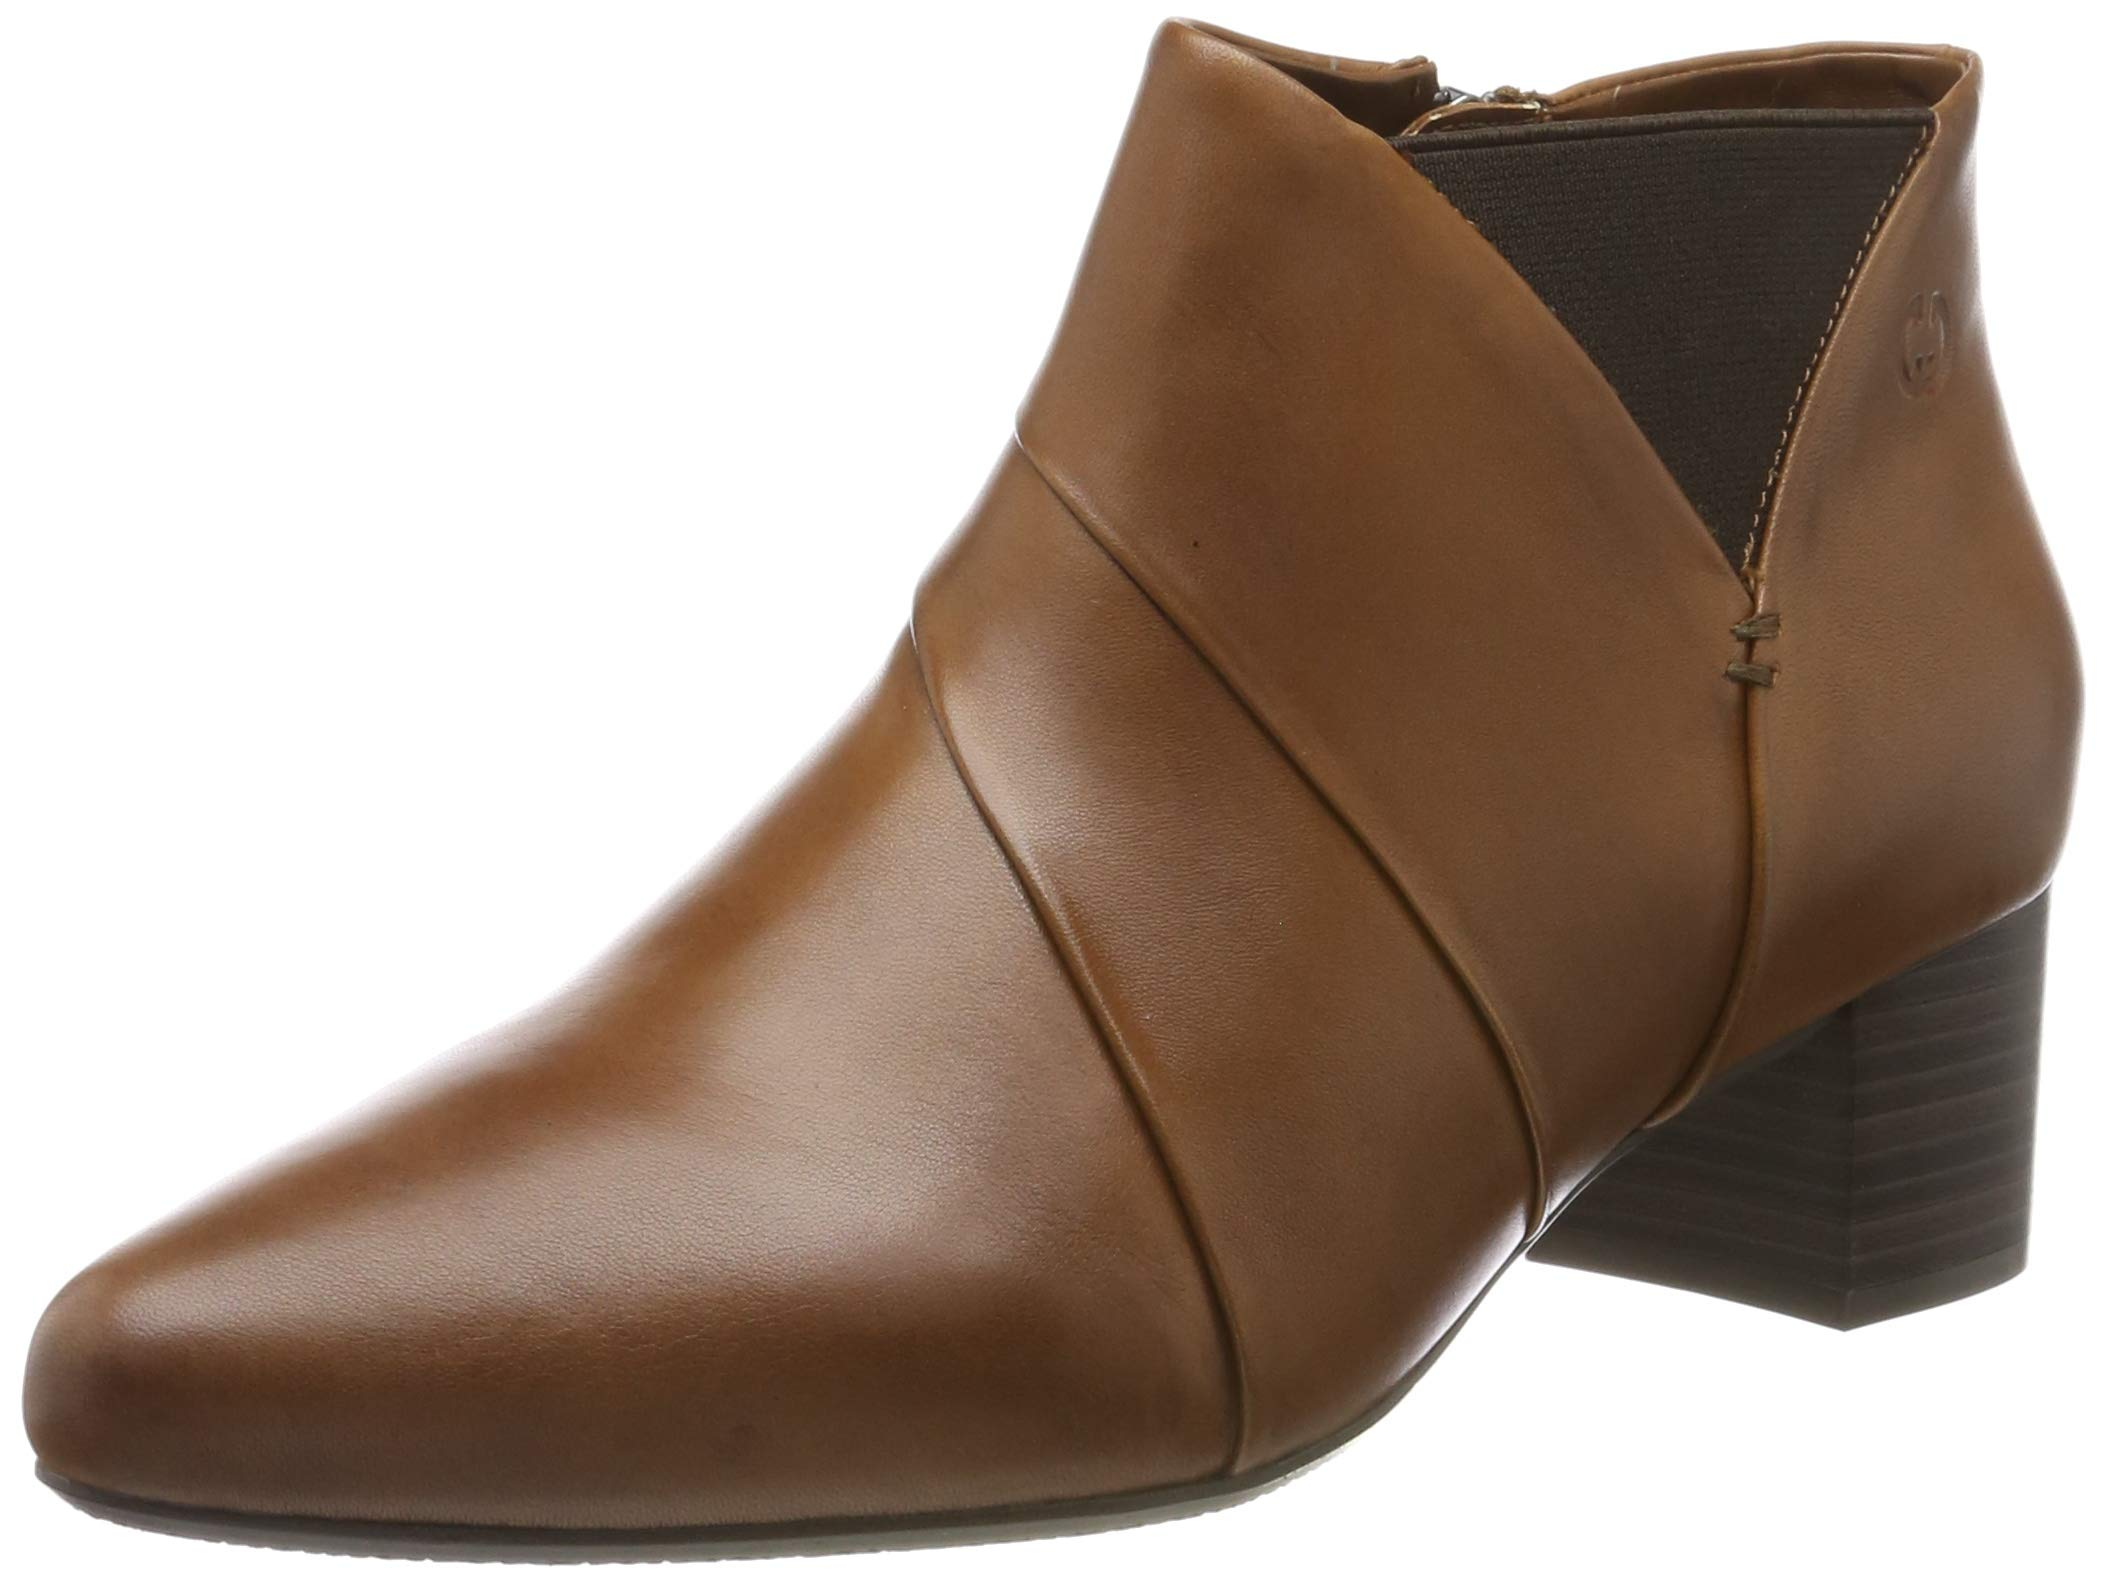 04Bottines 5 Eu FemmeMarroncognac Weber Shoes Terrassa Mi90 37041 Gerry 8nPkX0wO